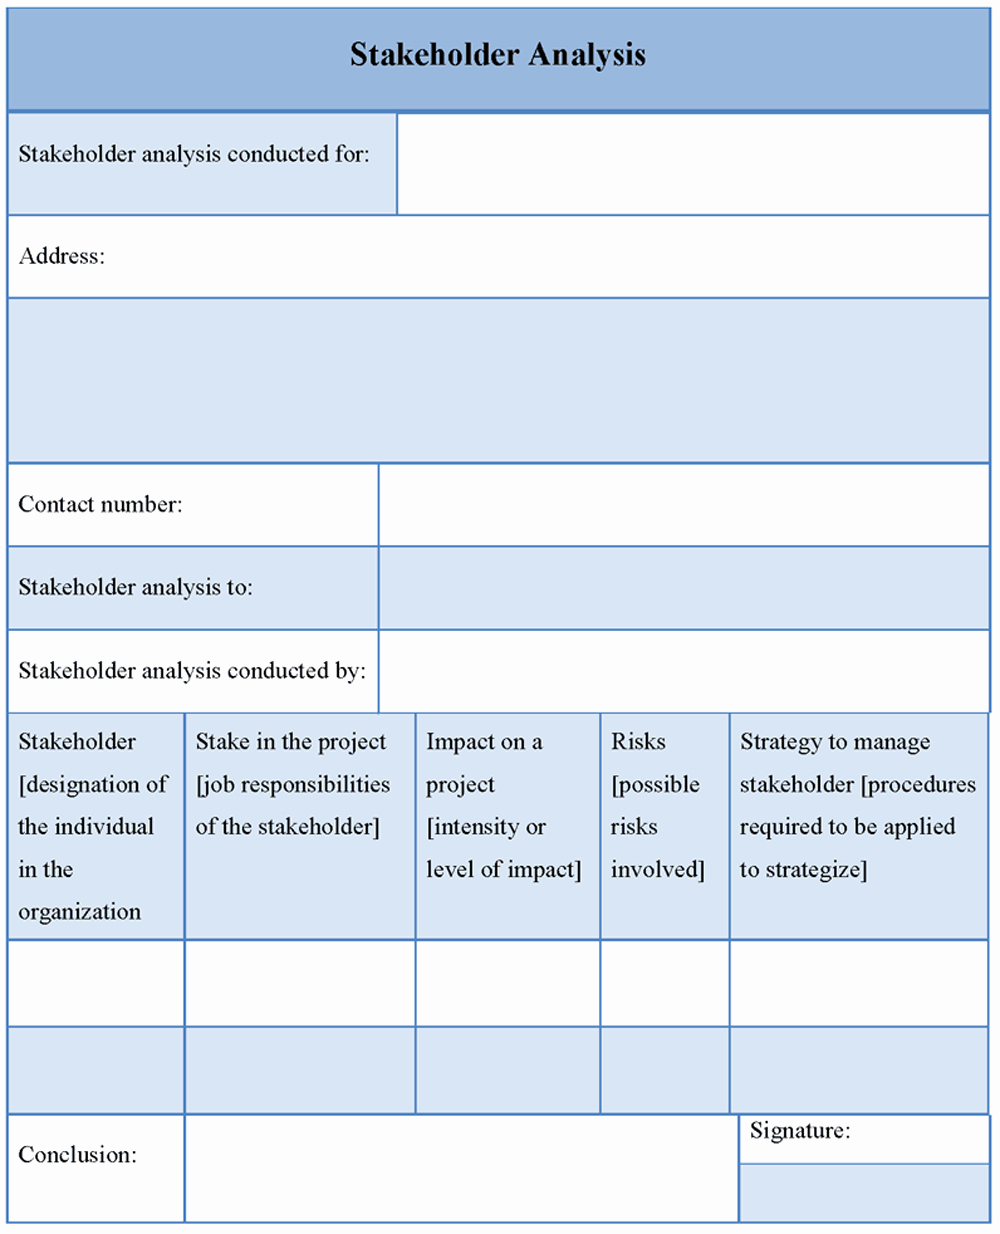 Stakeholder Analysis Template Excel Best Of Analysis Stakeholder Analysis Template